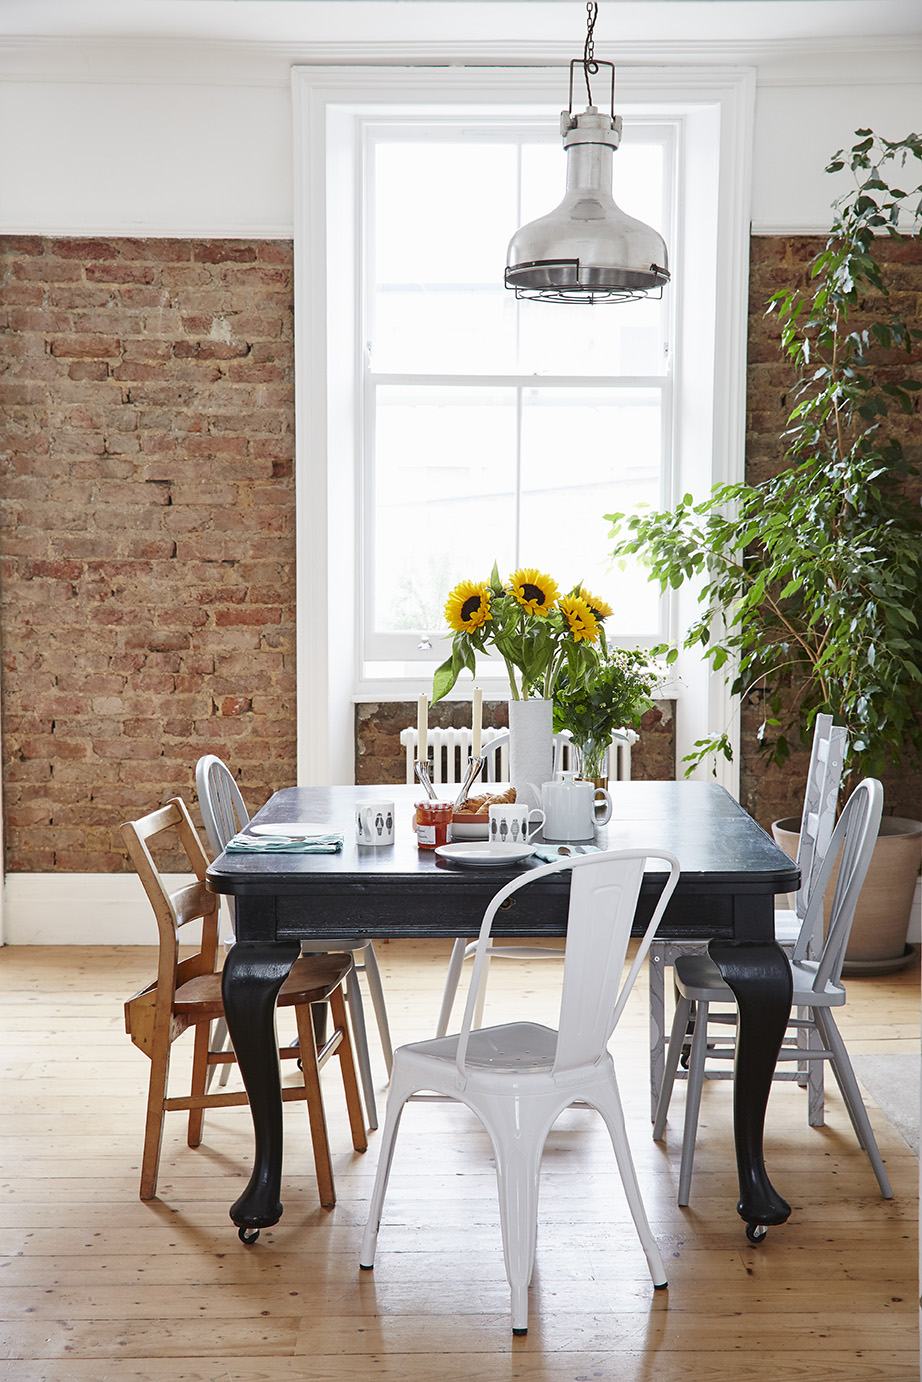 An old dining table and mismatched chairs